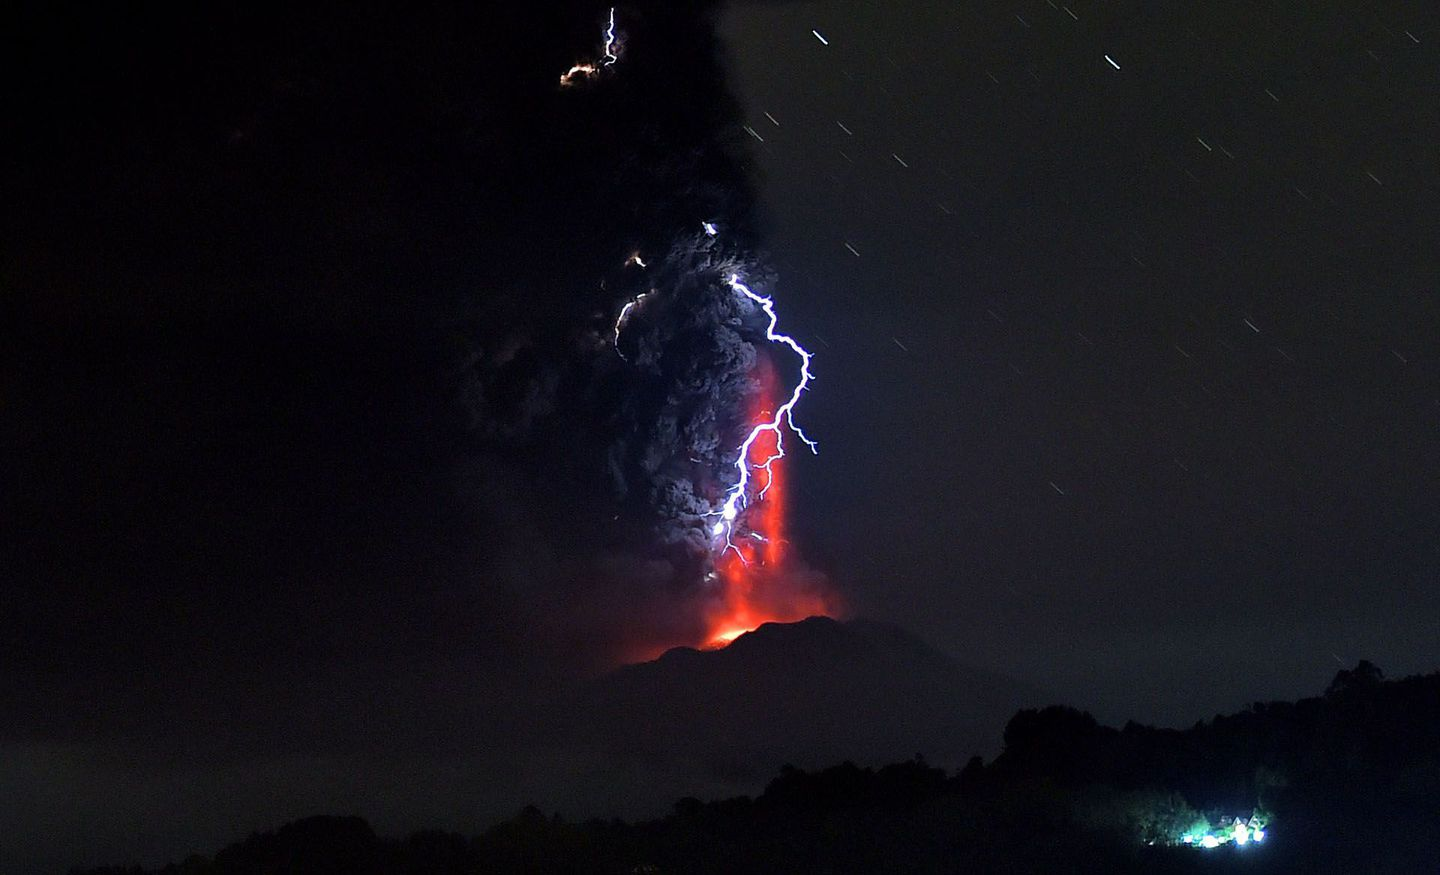 Erupting volcano puts on a dazzling lightning display in Chile